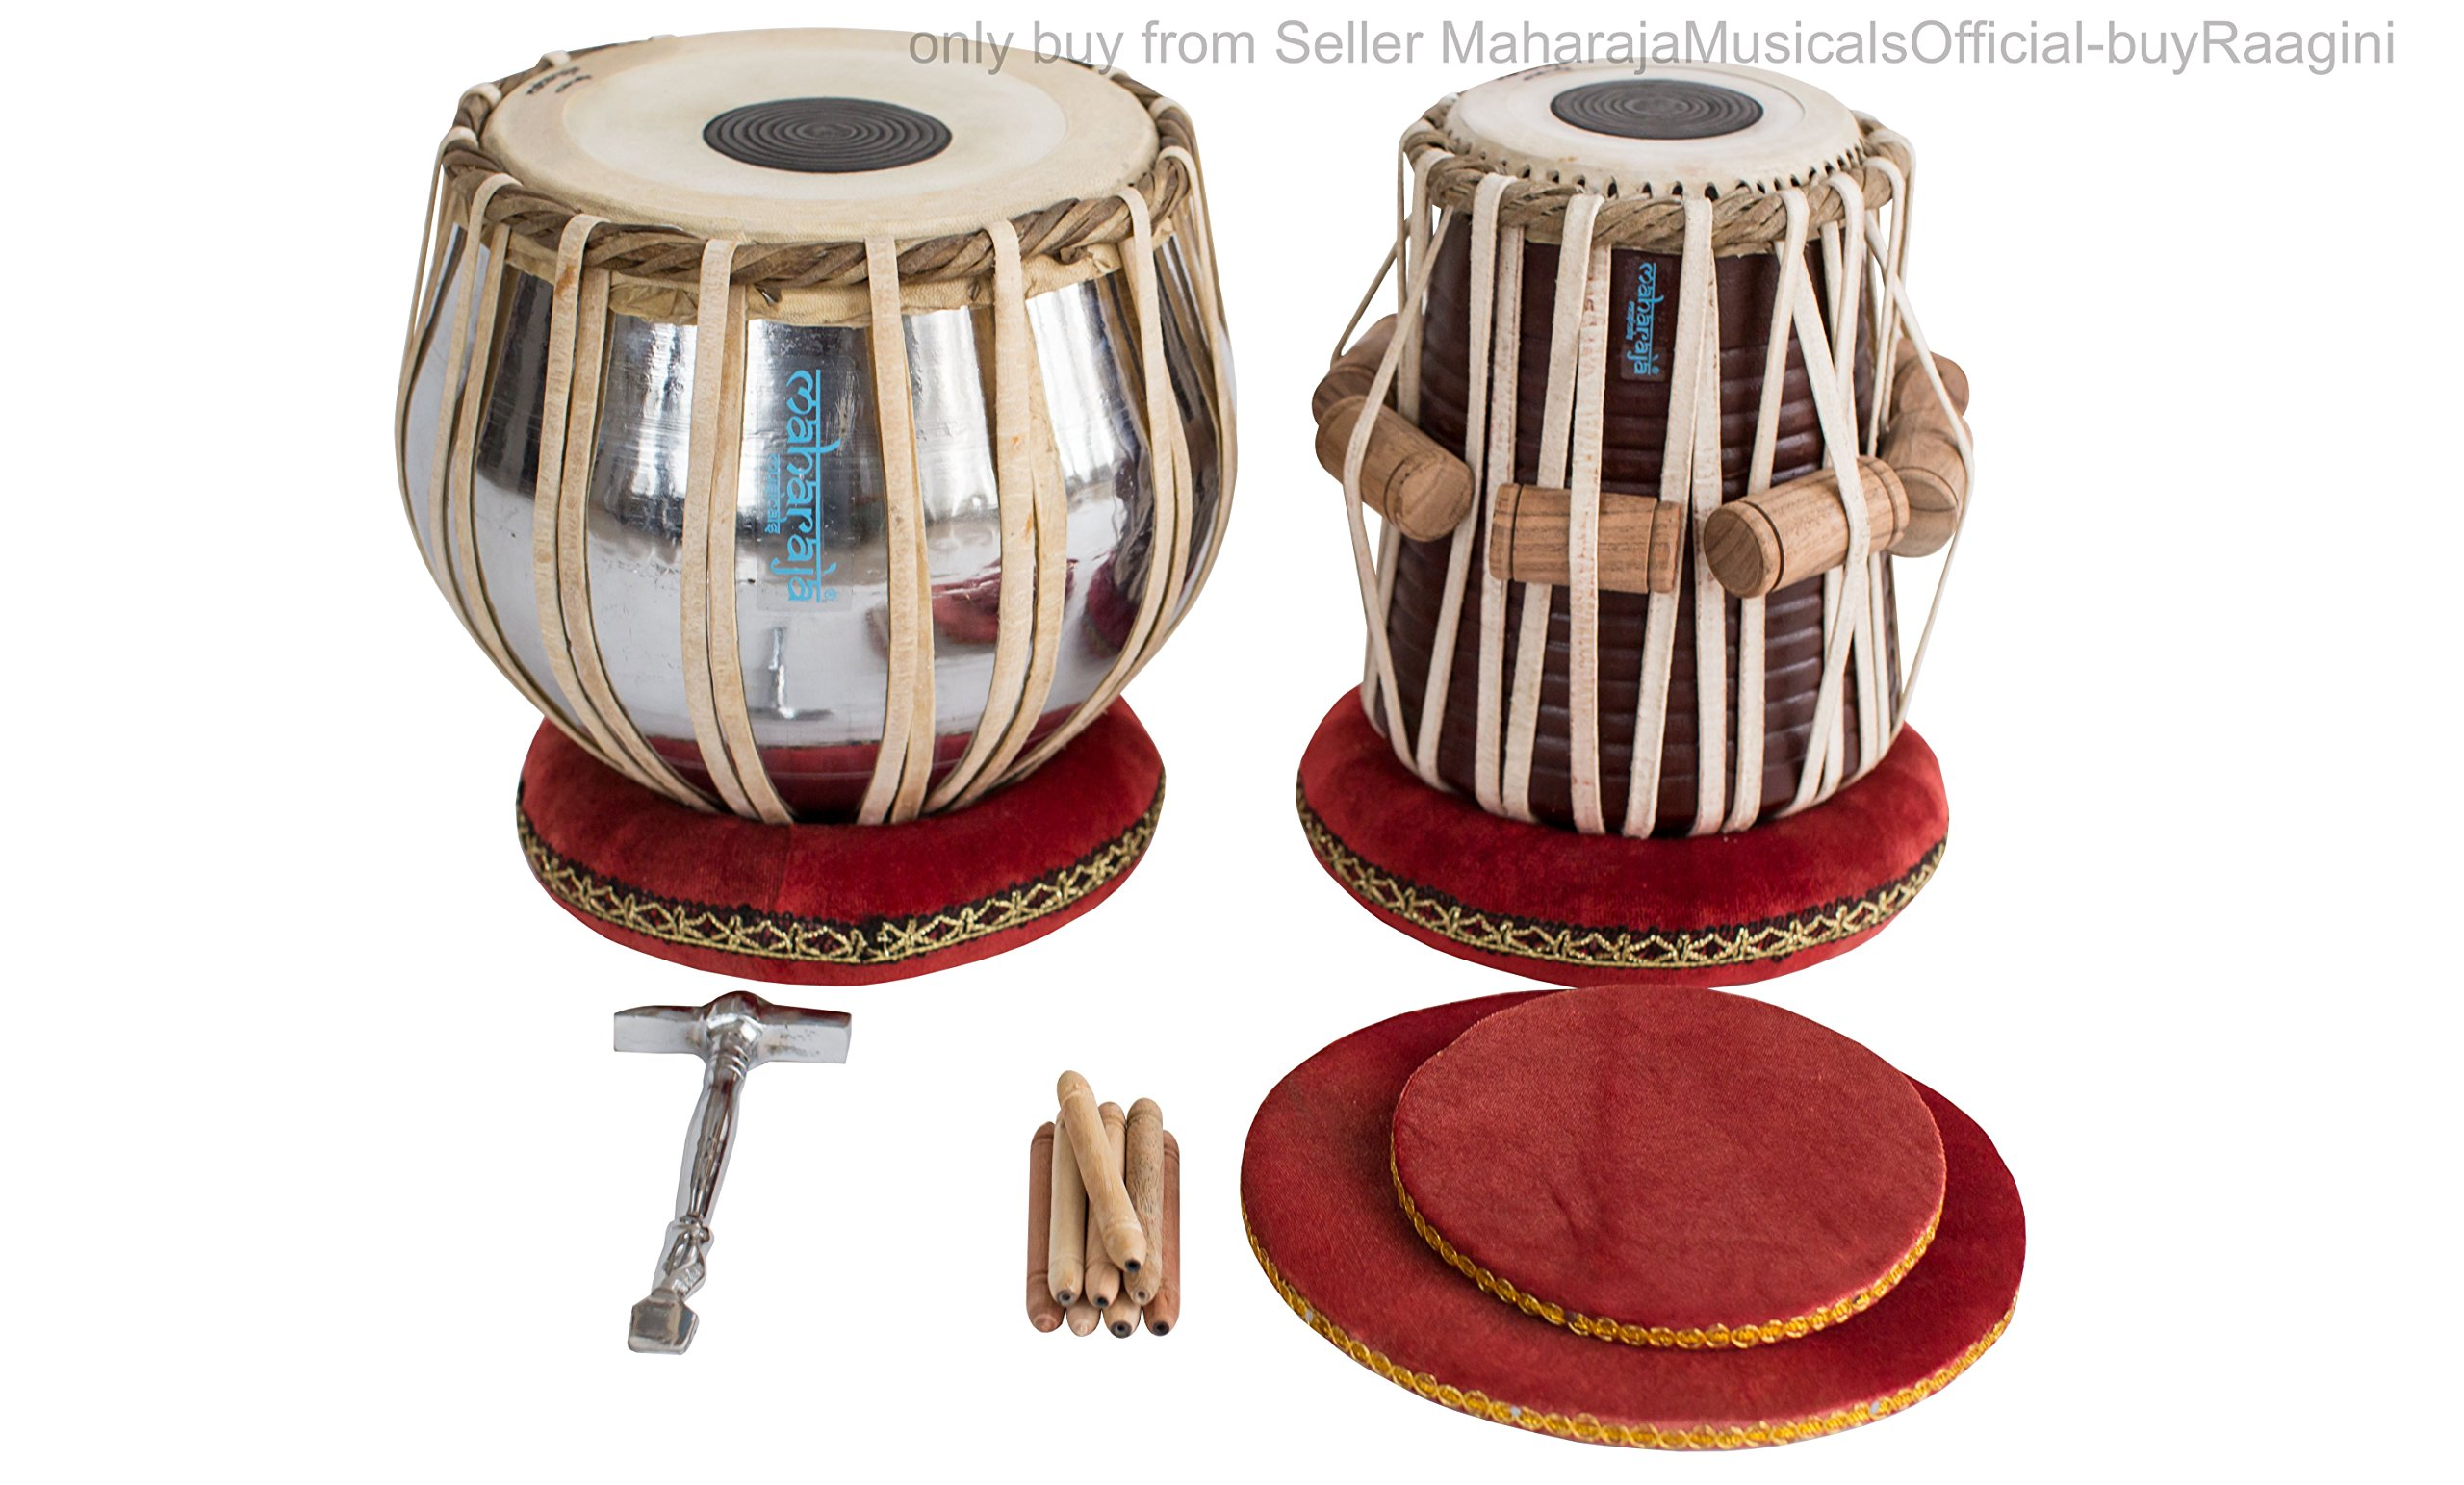 MAHARAJA Student Tabla Drum Set, Basic Tabla Set, Steel Bayan, Dayan with Book, Hammer, Cushions & Cover - Perfect Tablas for Students and Beginners on Budget (PDI-IB) Tabla Drums, Indian Hand Drums by Maharaja Musicals (Image #1)